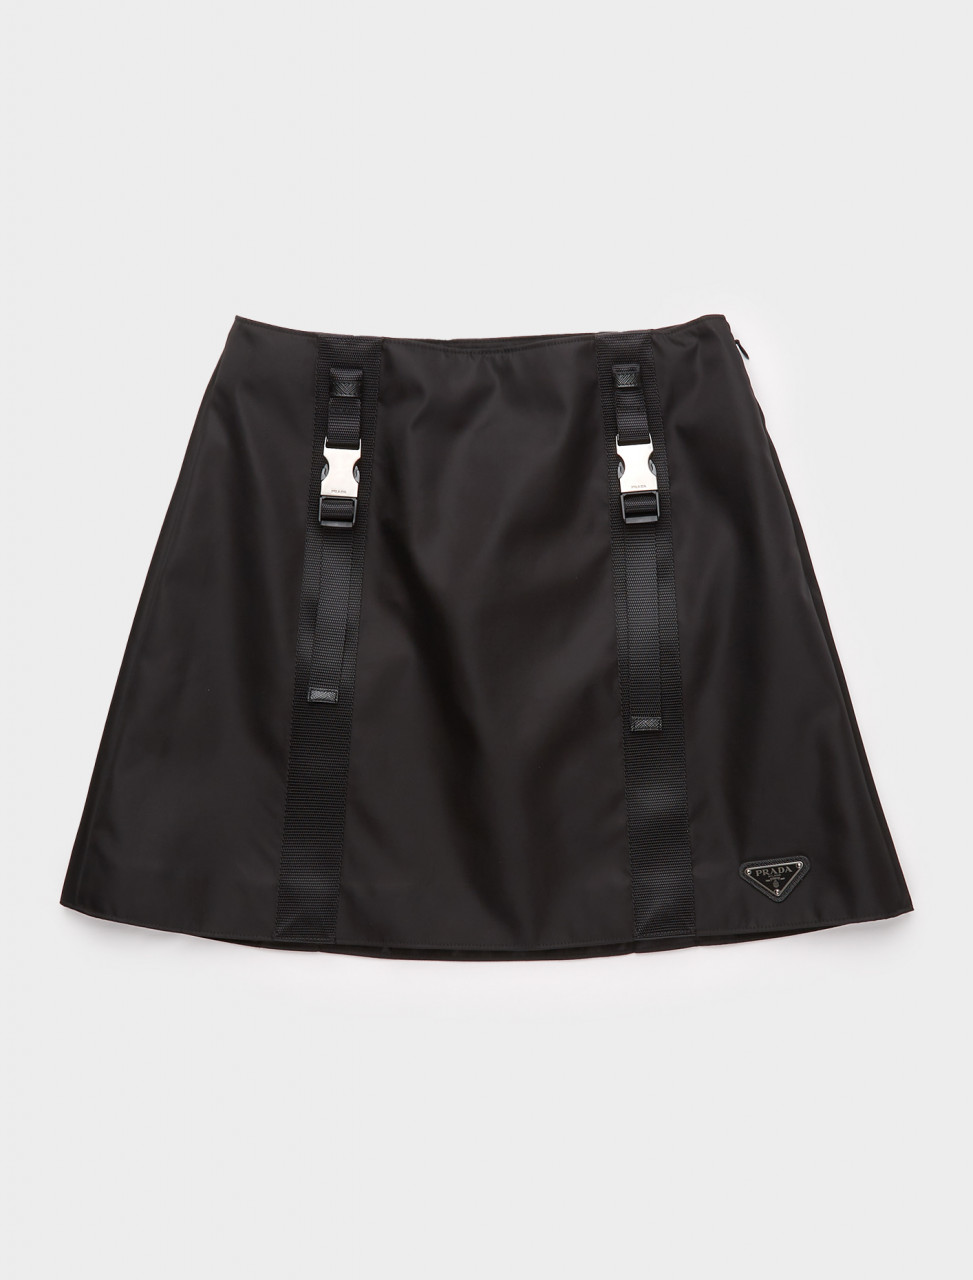 21H875-F0002 PRADA RE-NYLON SKIRT WITH WOVEN STRAPS BLACK